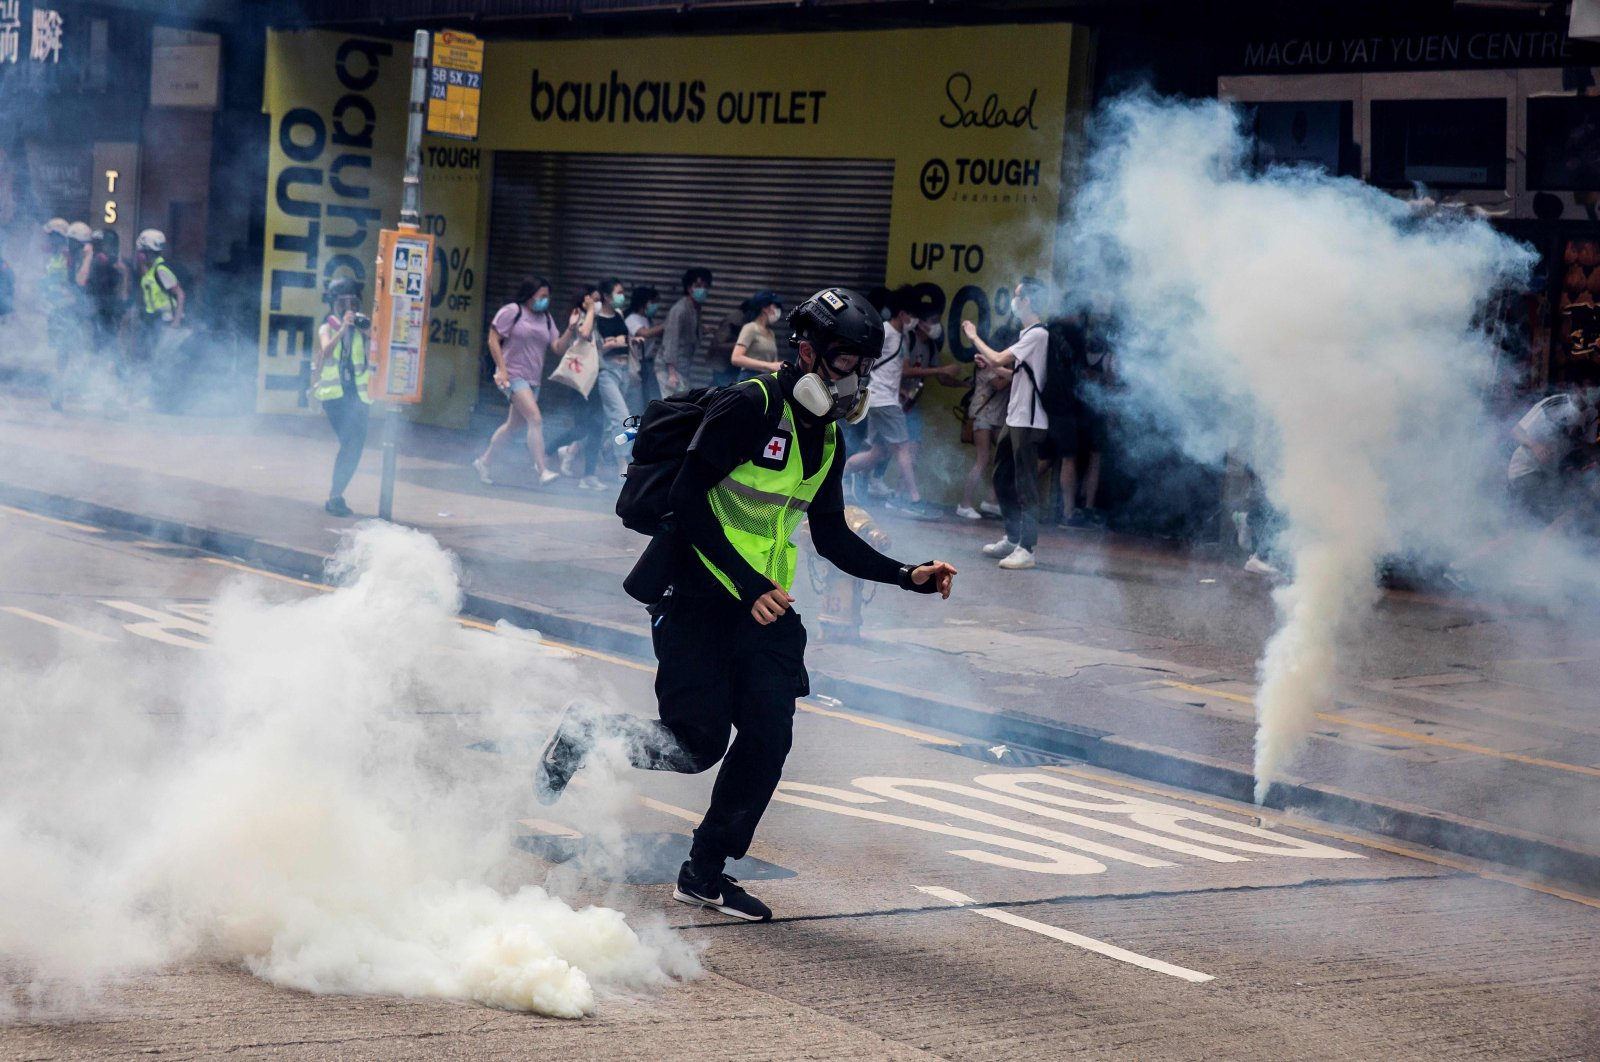 Police fire tear gas on protesters during planned protests against a proposal to enact a new security legislation in Hong Kong on May 24, 2020. (AFP Photo)